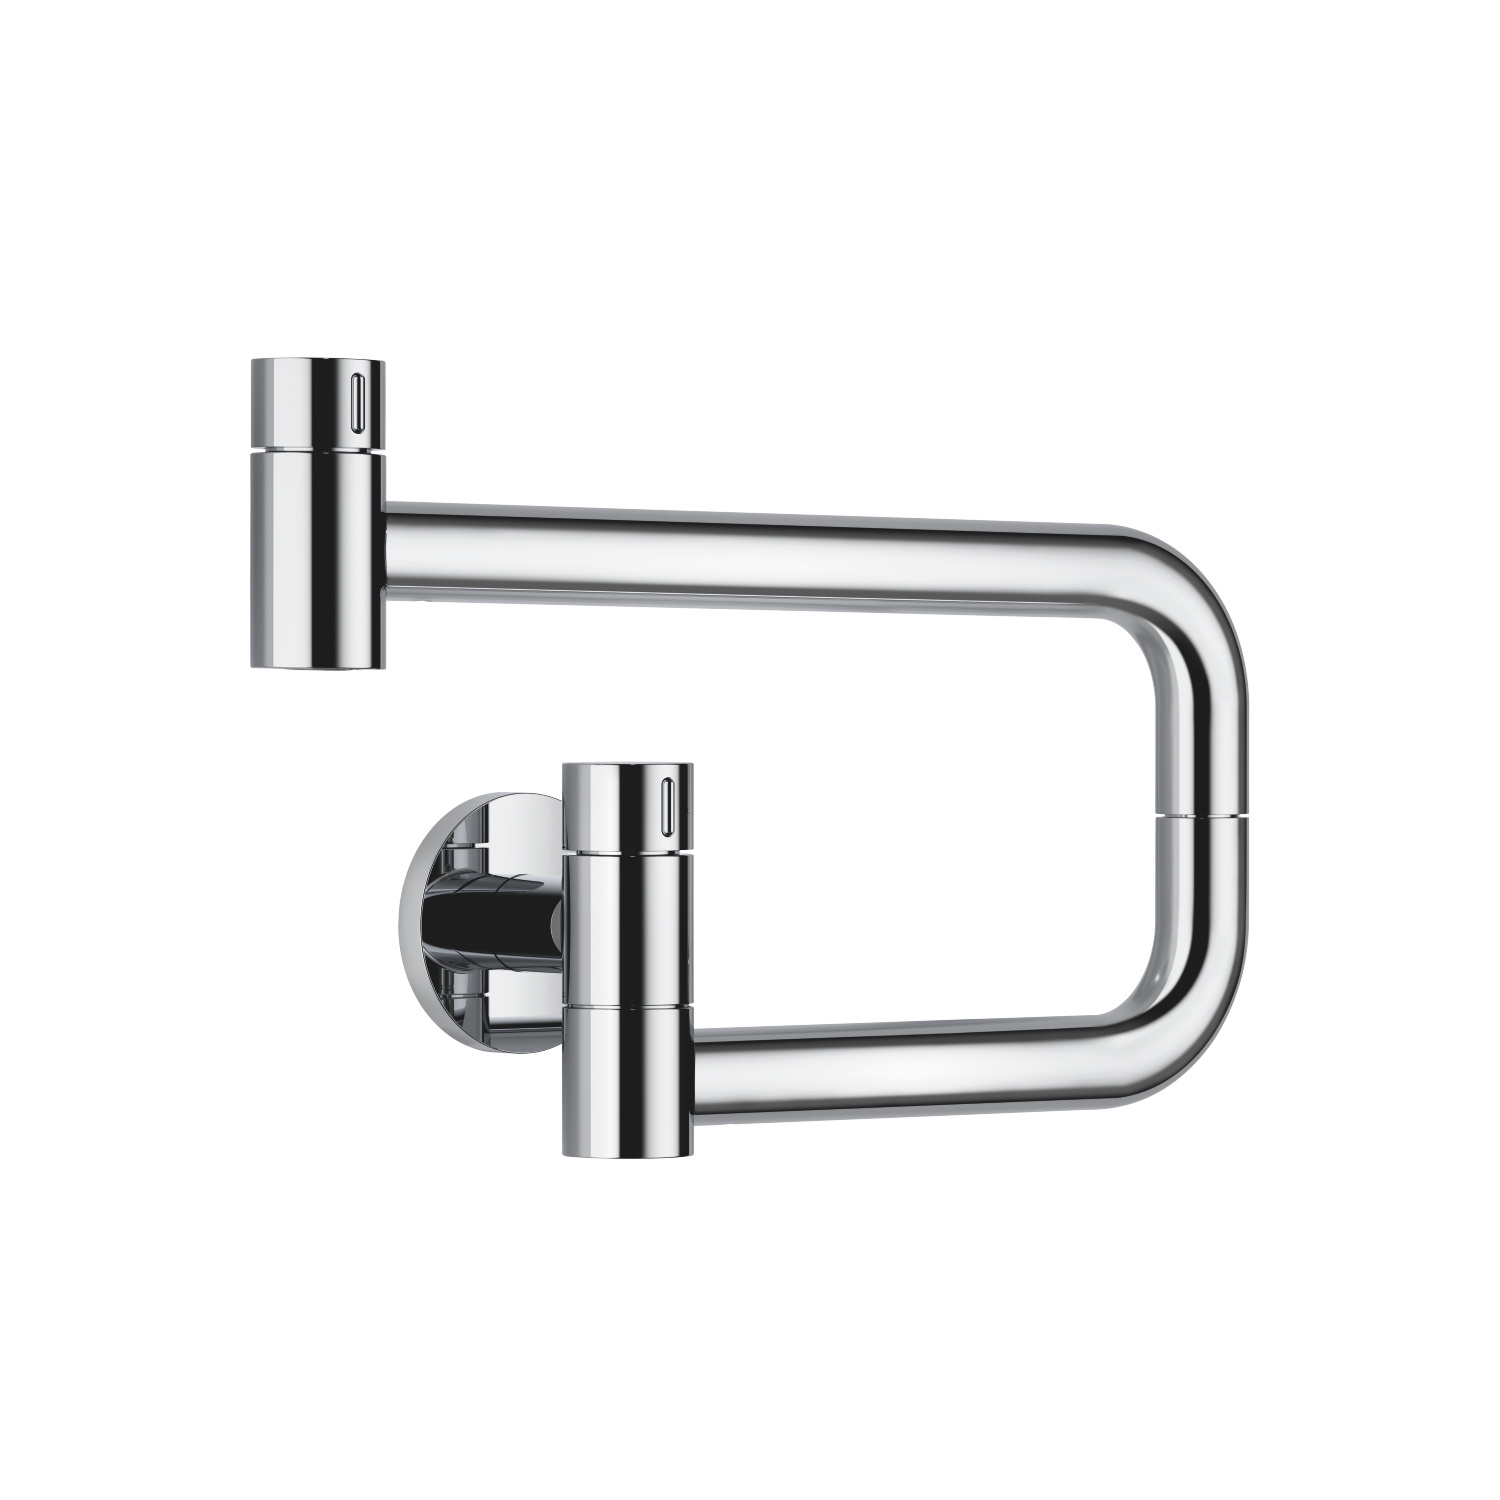 POT FILLER Cold-water valve - polished chrome - 30 805 875-00